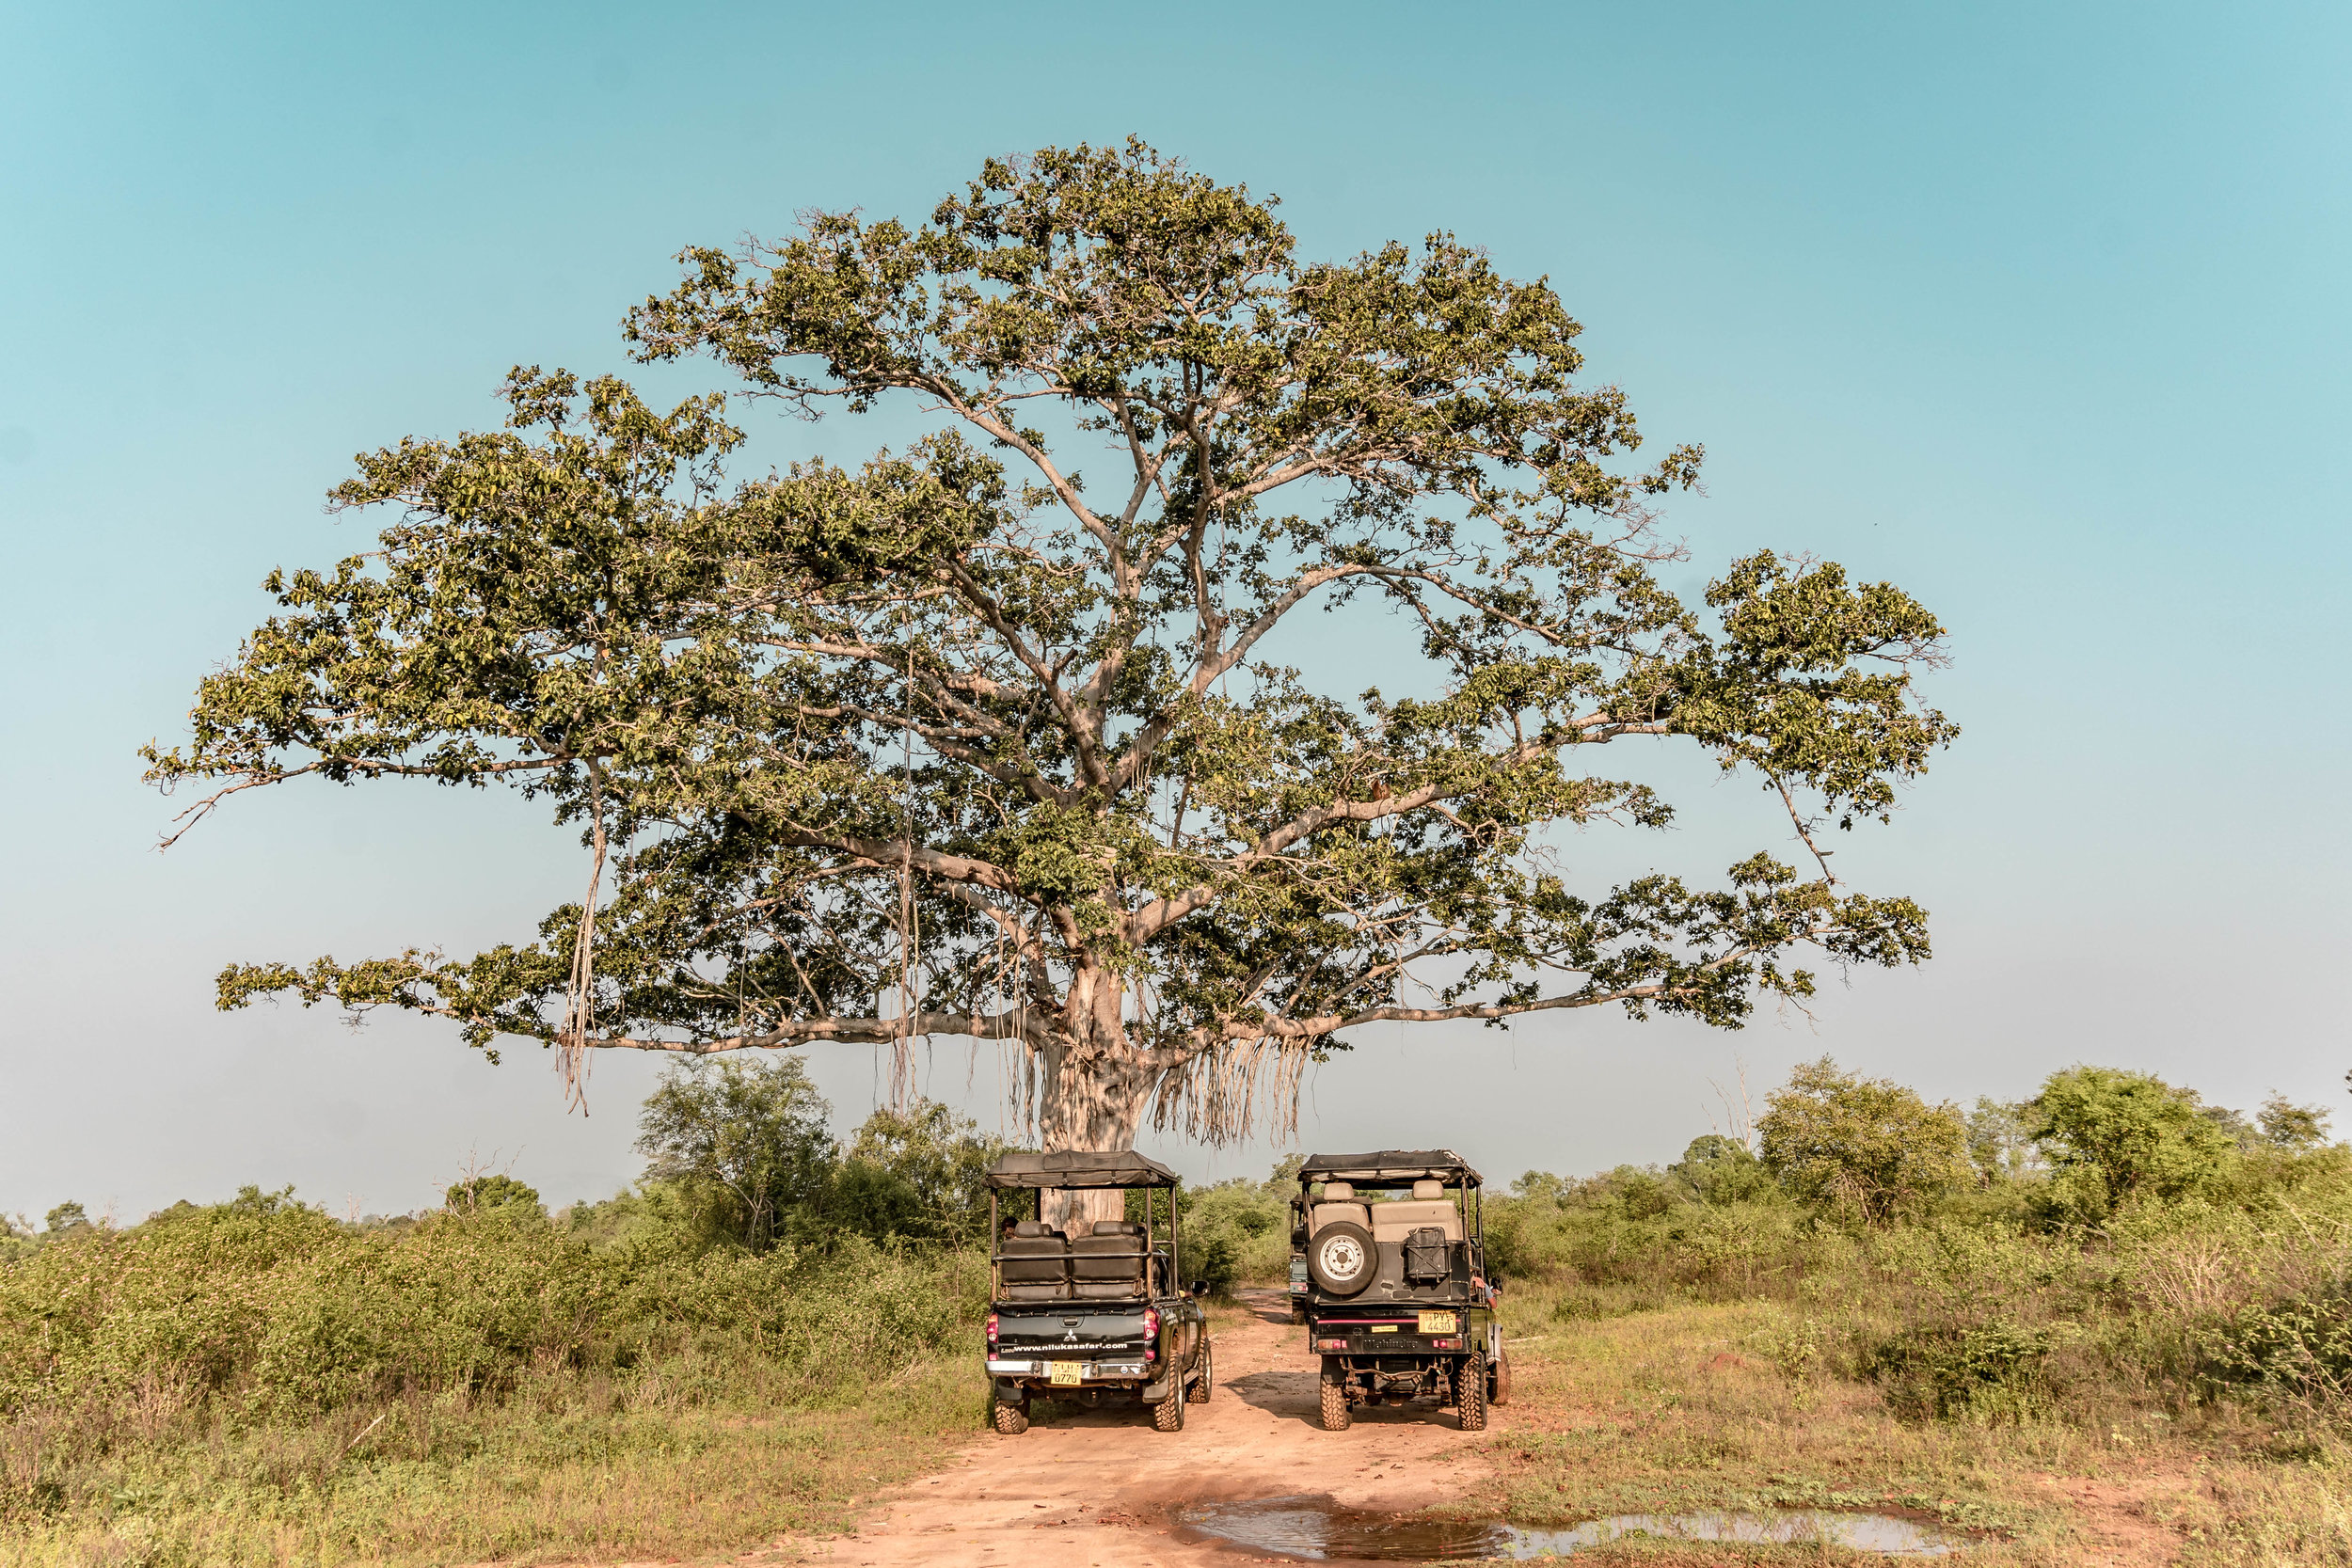 A SAFARI GUIDE TO UDAWALAWE NATIONAL PARK IN SRI LANKA